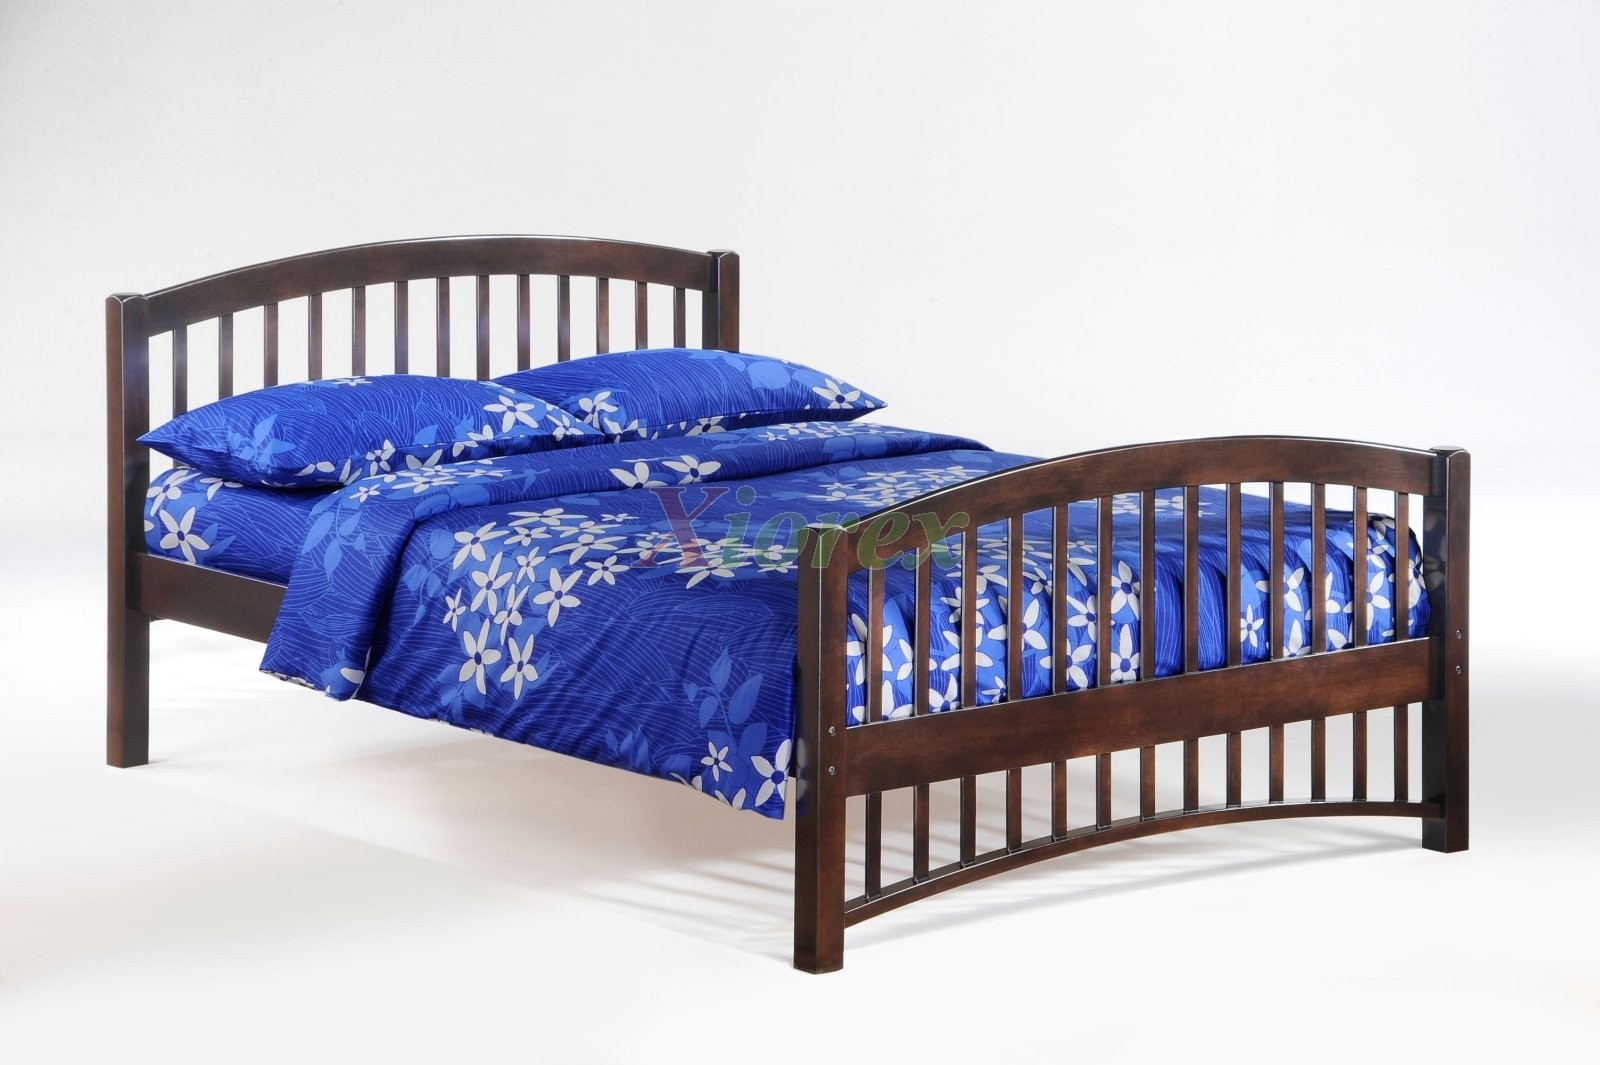 Zest Molasses Bed Night & Day Molasses Bed Sets for Kids